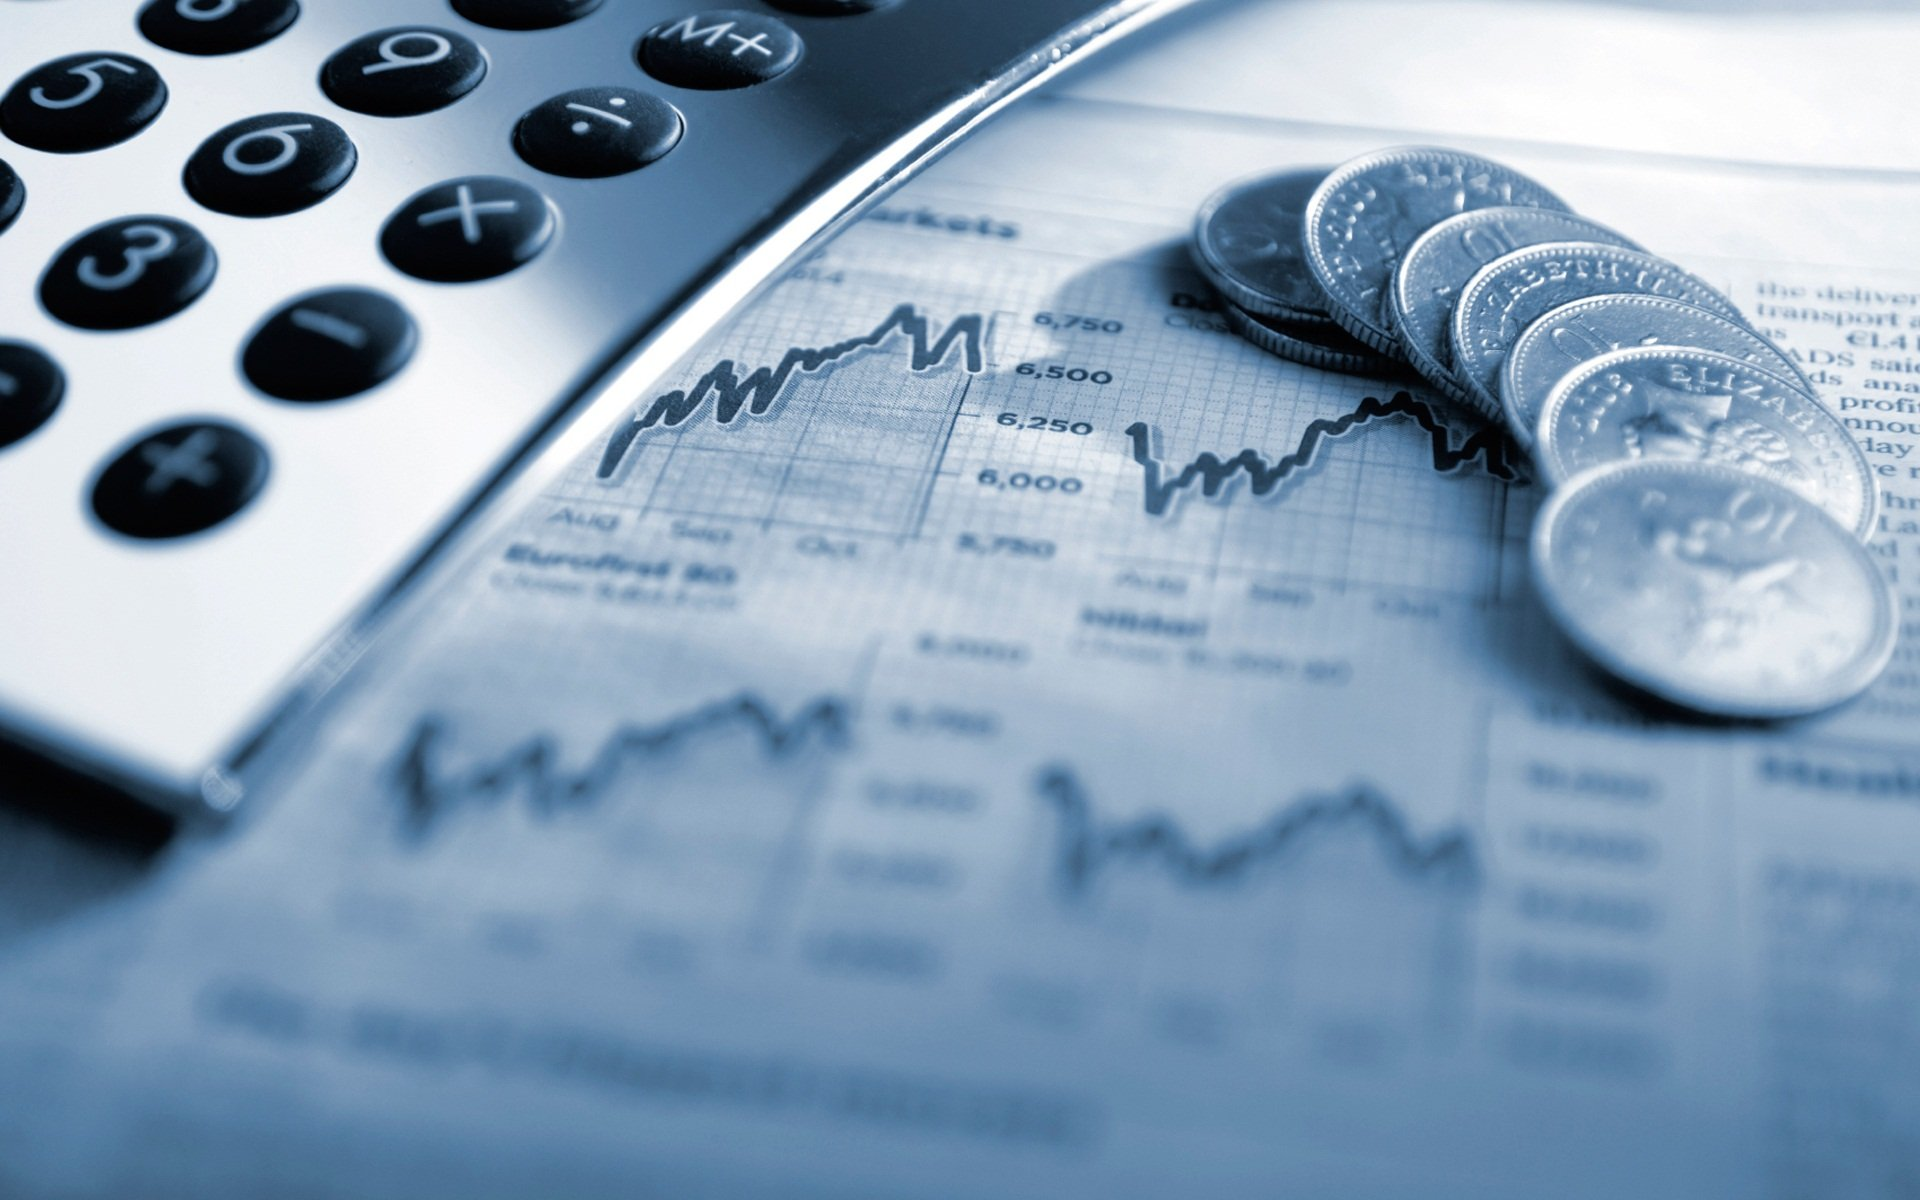 Banking finance and insurance